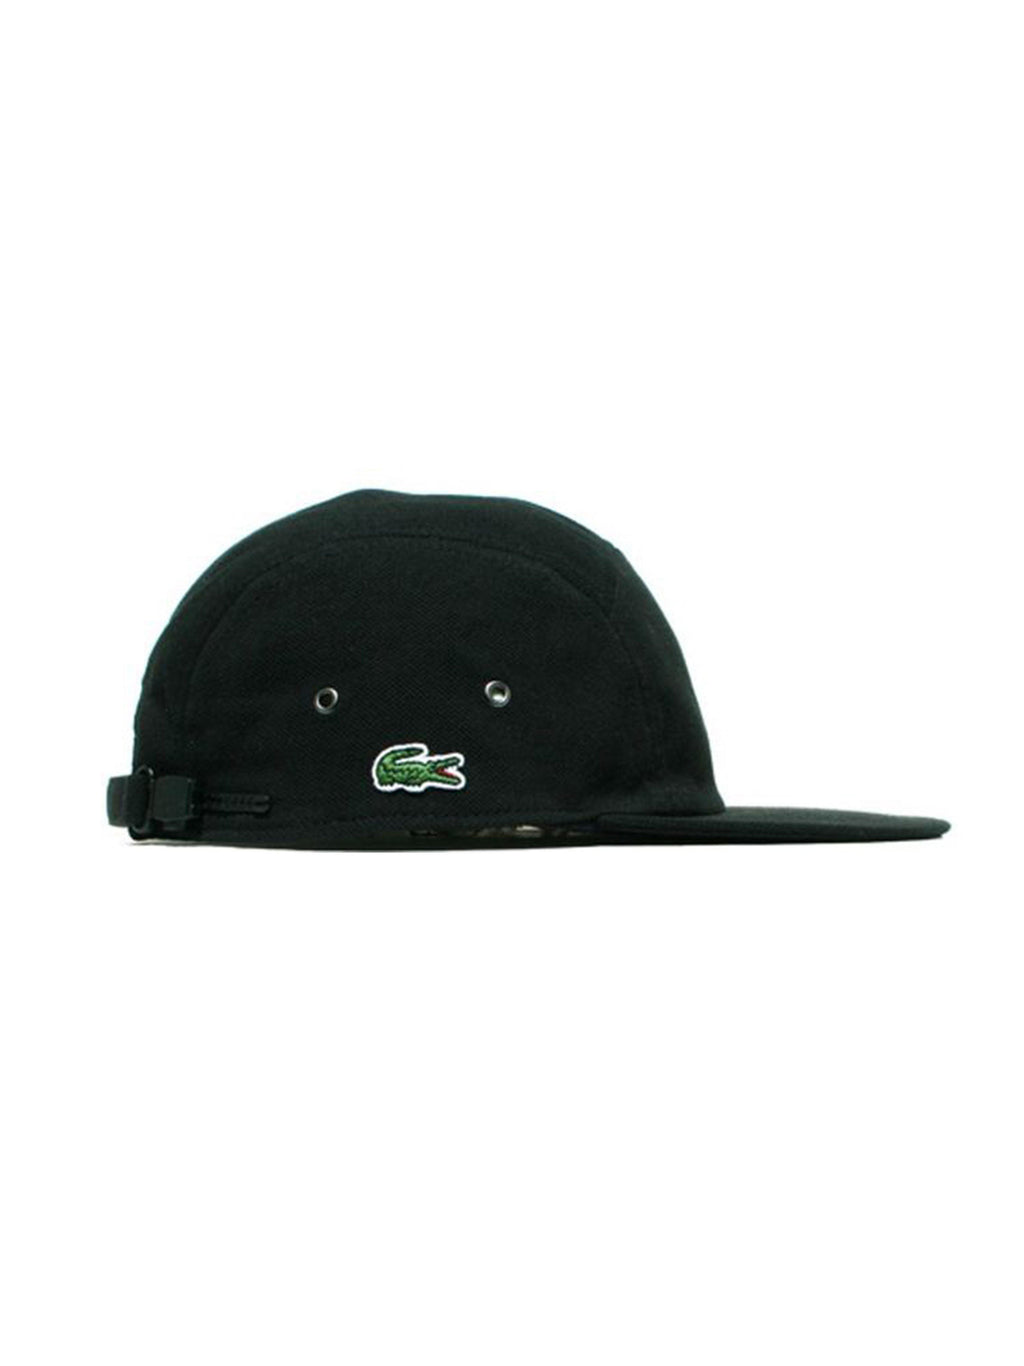 Supreme Lacoste Pique Knit Camp Cap Black - PRIOR